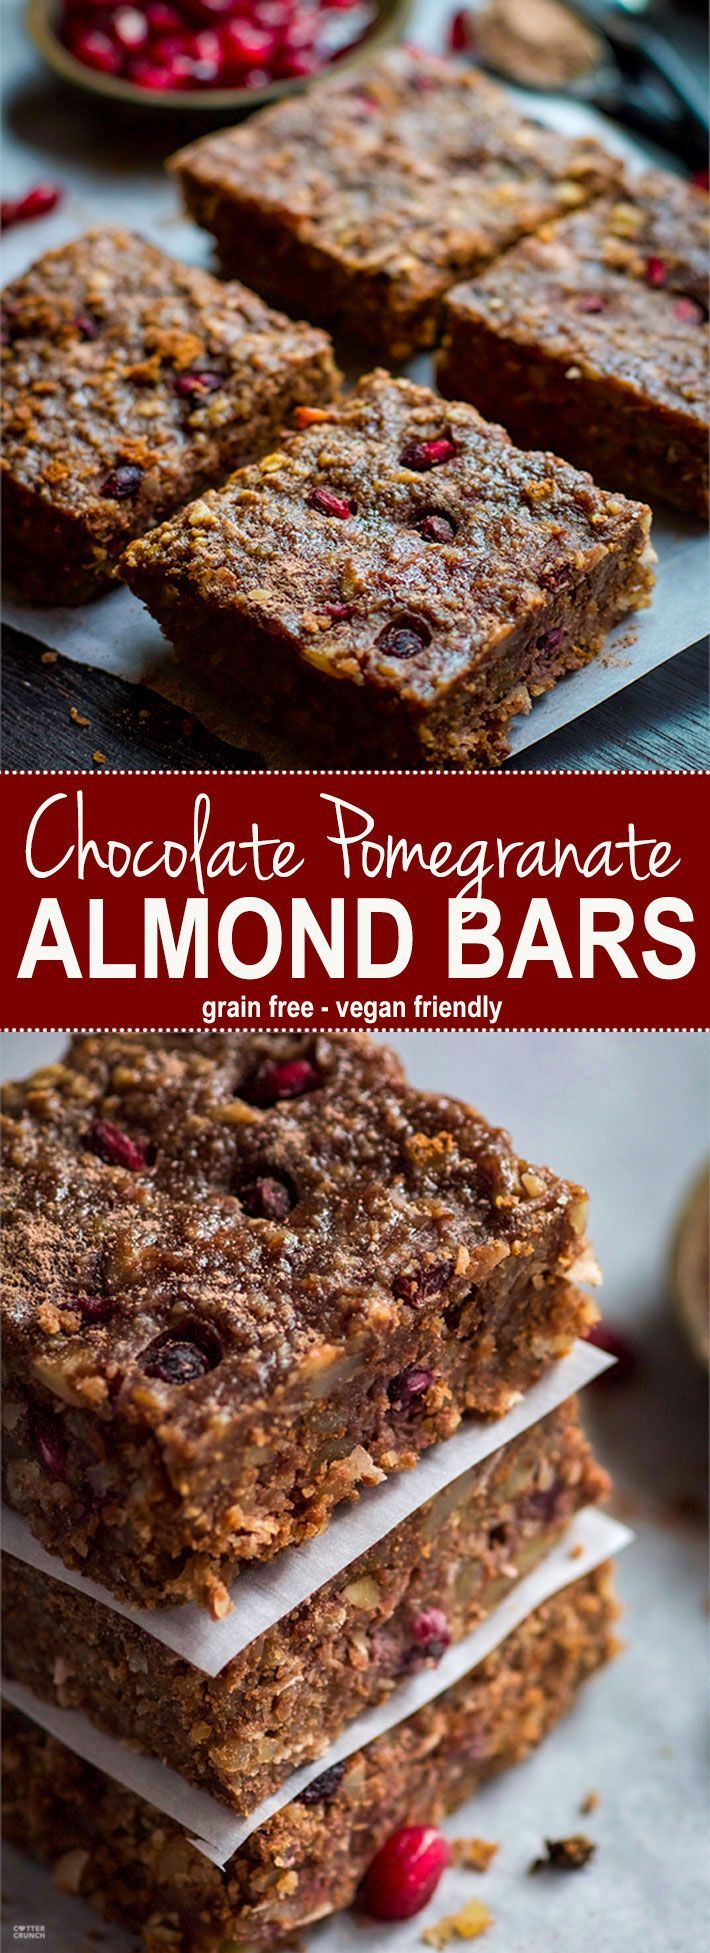 Gluten Free Chocolate Almond Bars with Pomegranate! Oh heavens yes! A Vegan friendly and Gluten Free Chocolate Bar you can have for breakfast, snack, or dessert! Packed with Antioxidants (cocoa, almonds, pomegranate) and bursting with flavor. Healthy yet satisfying. http://www.cottercrunch.com